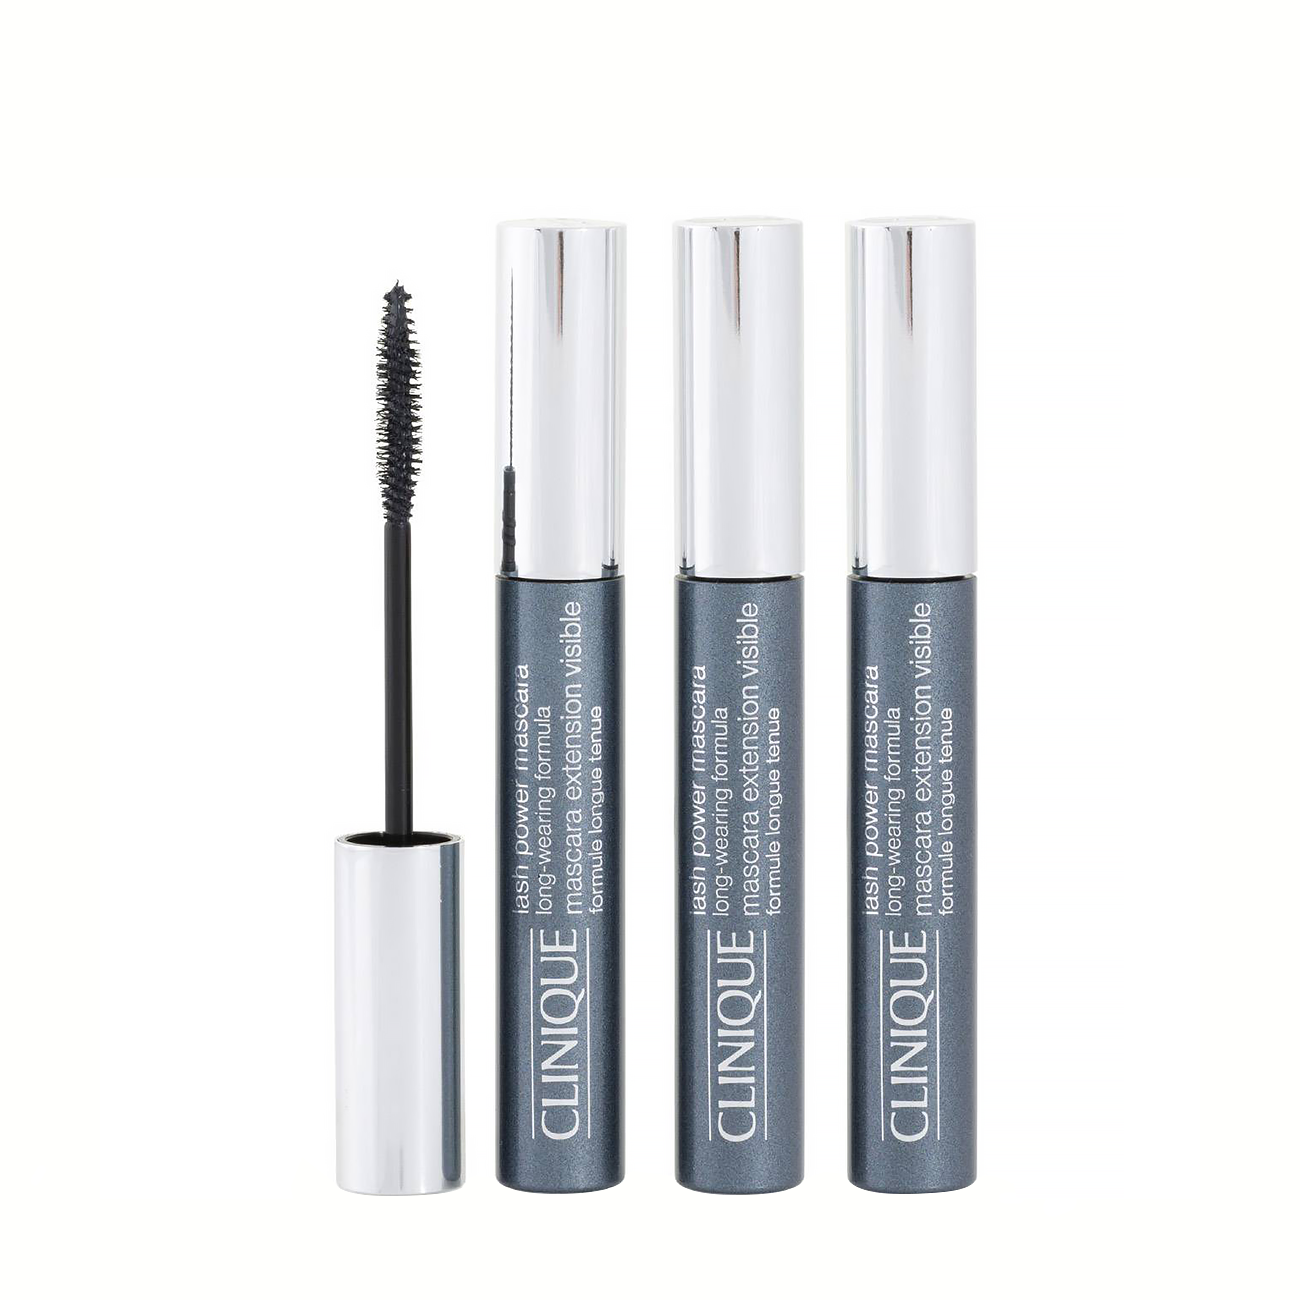 MASCARA LASH POWER SET imagine produs